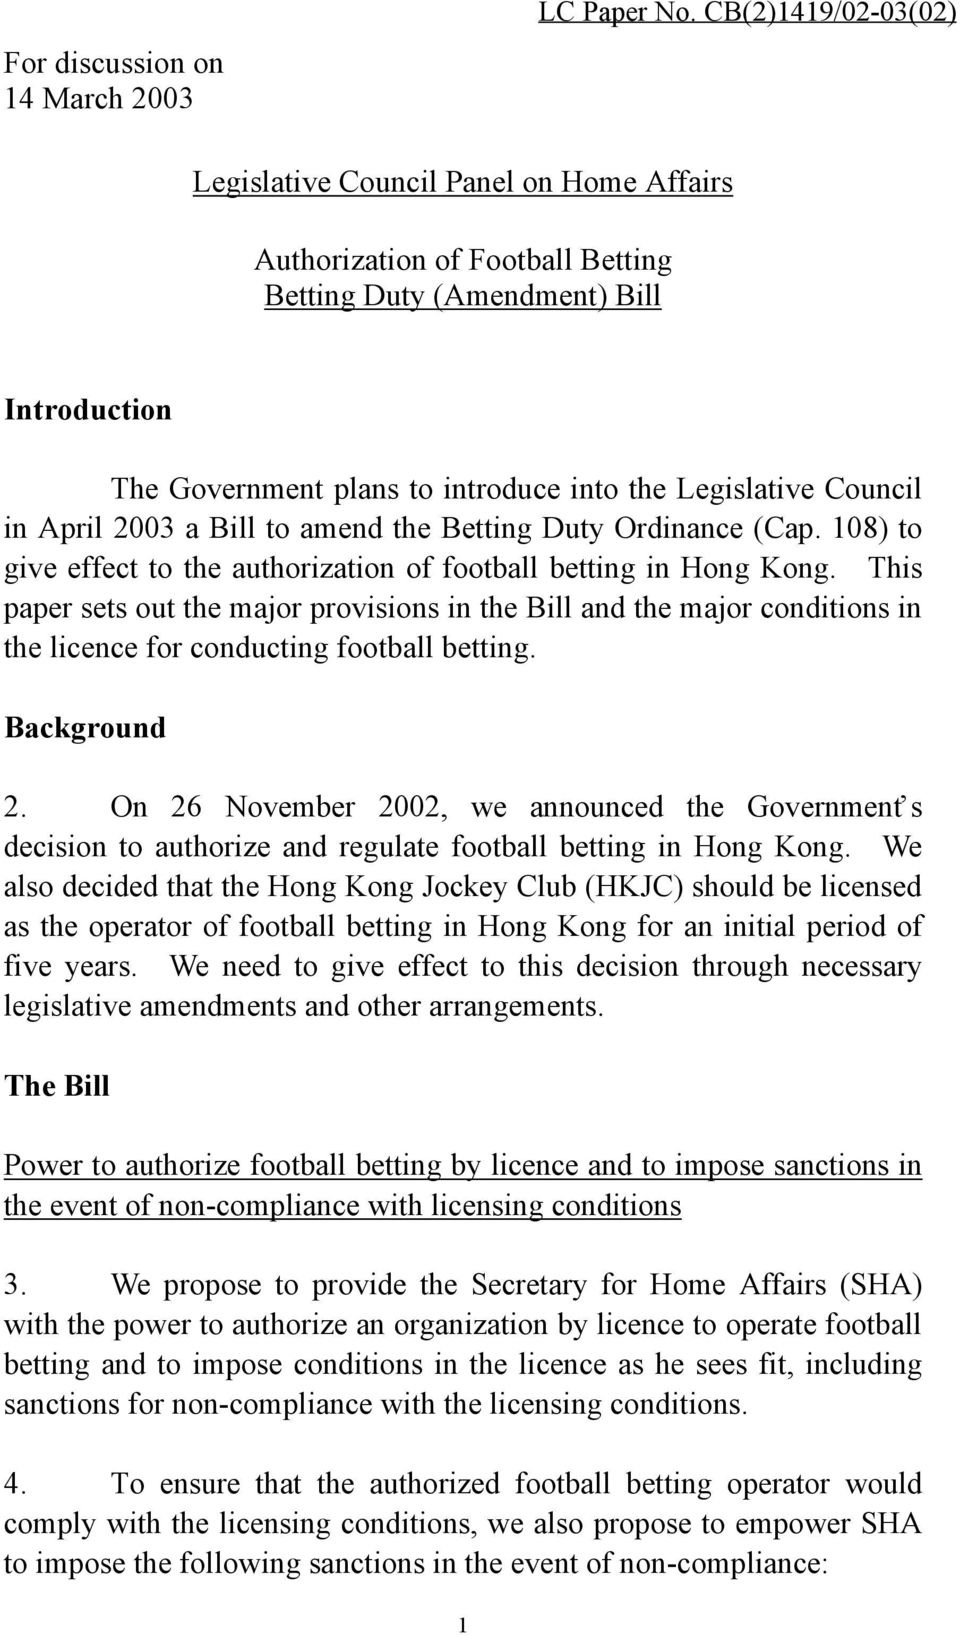 Council in April 2003 a Bill to amend the Betting Duty Ordinance (Cap. 108) to give effect to the authorization of football betting in Hong Kong.